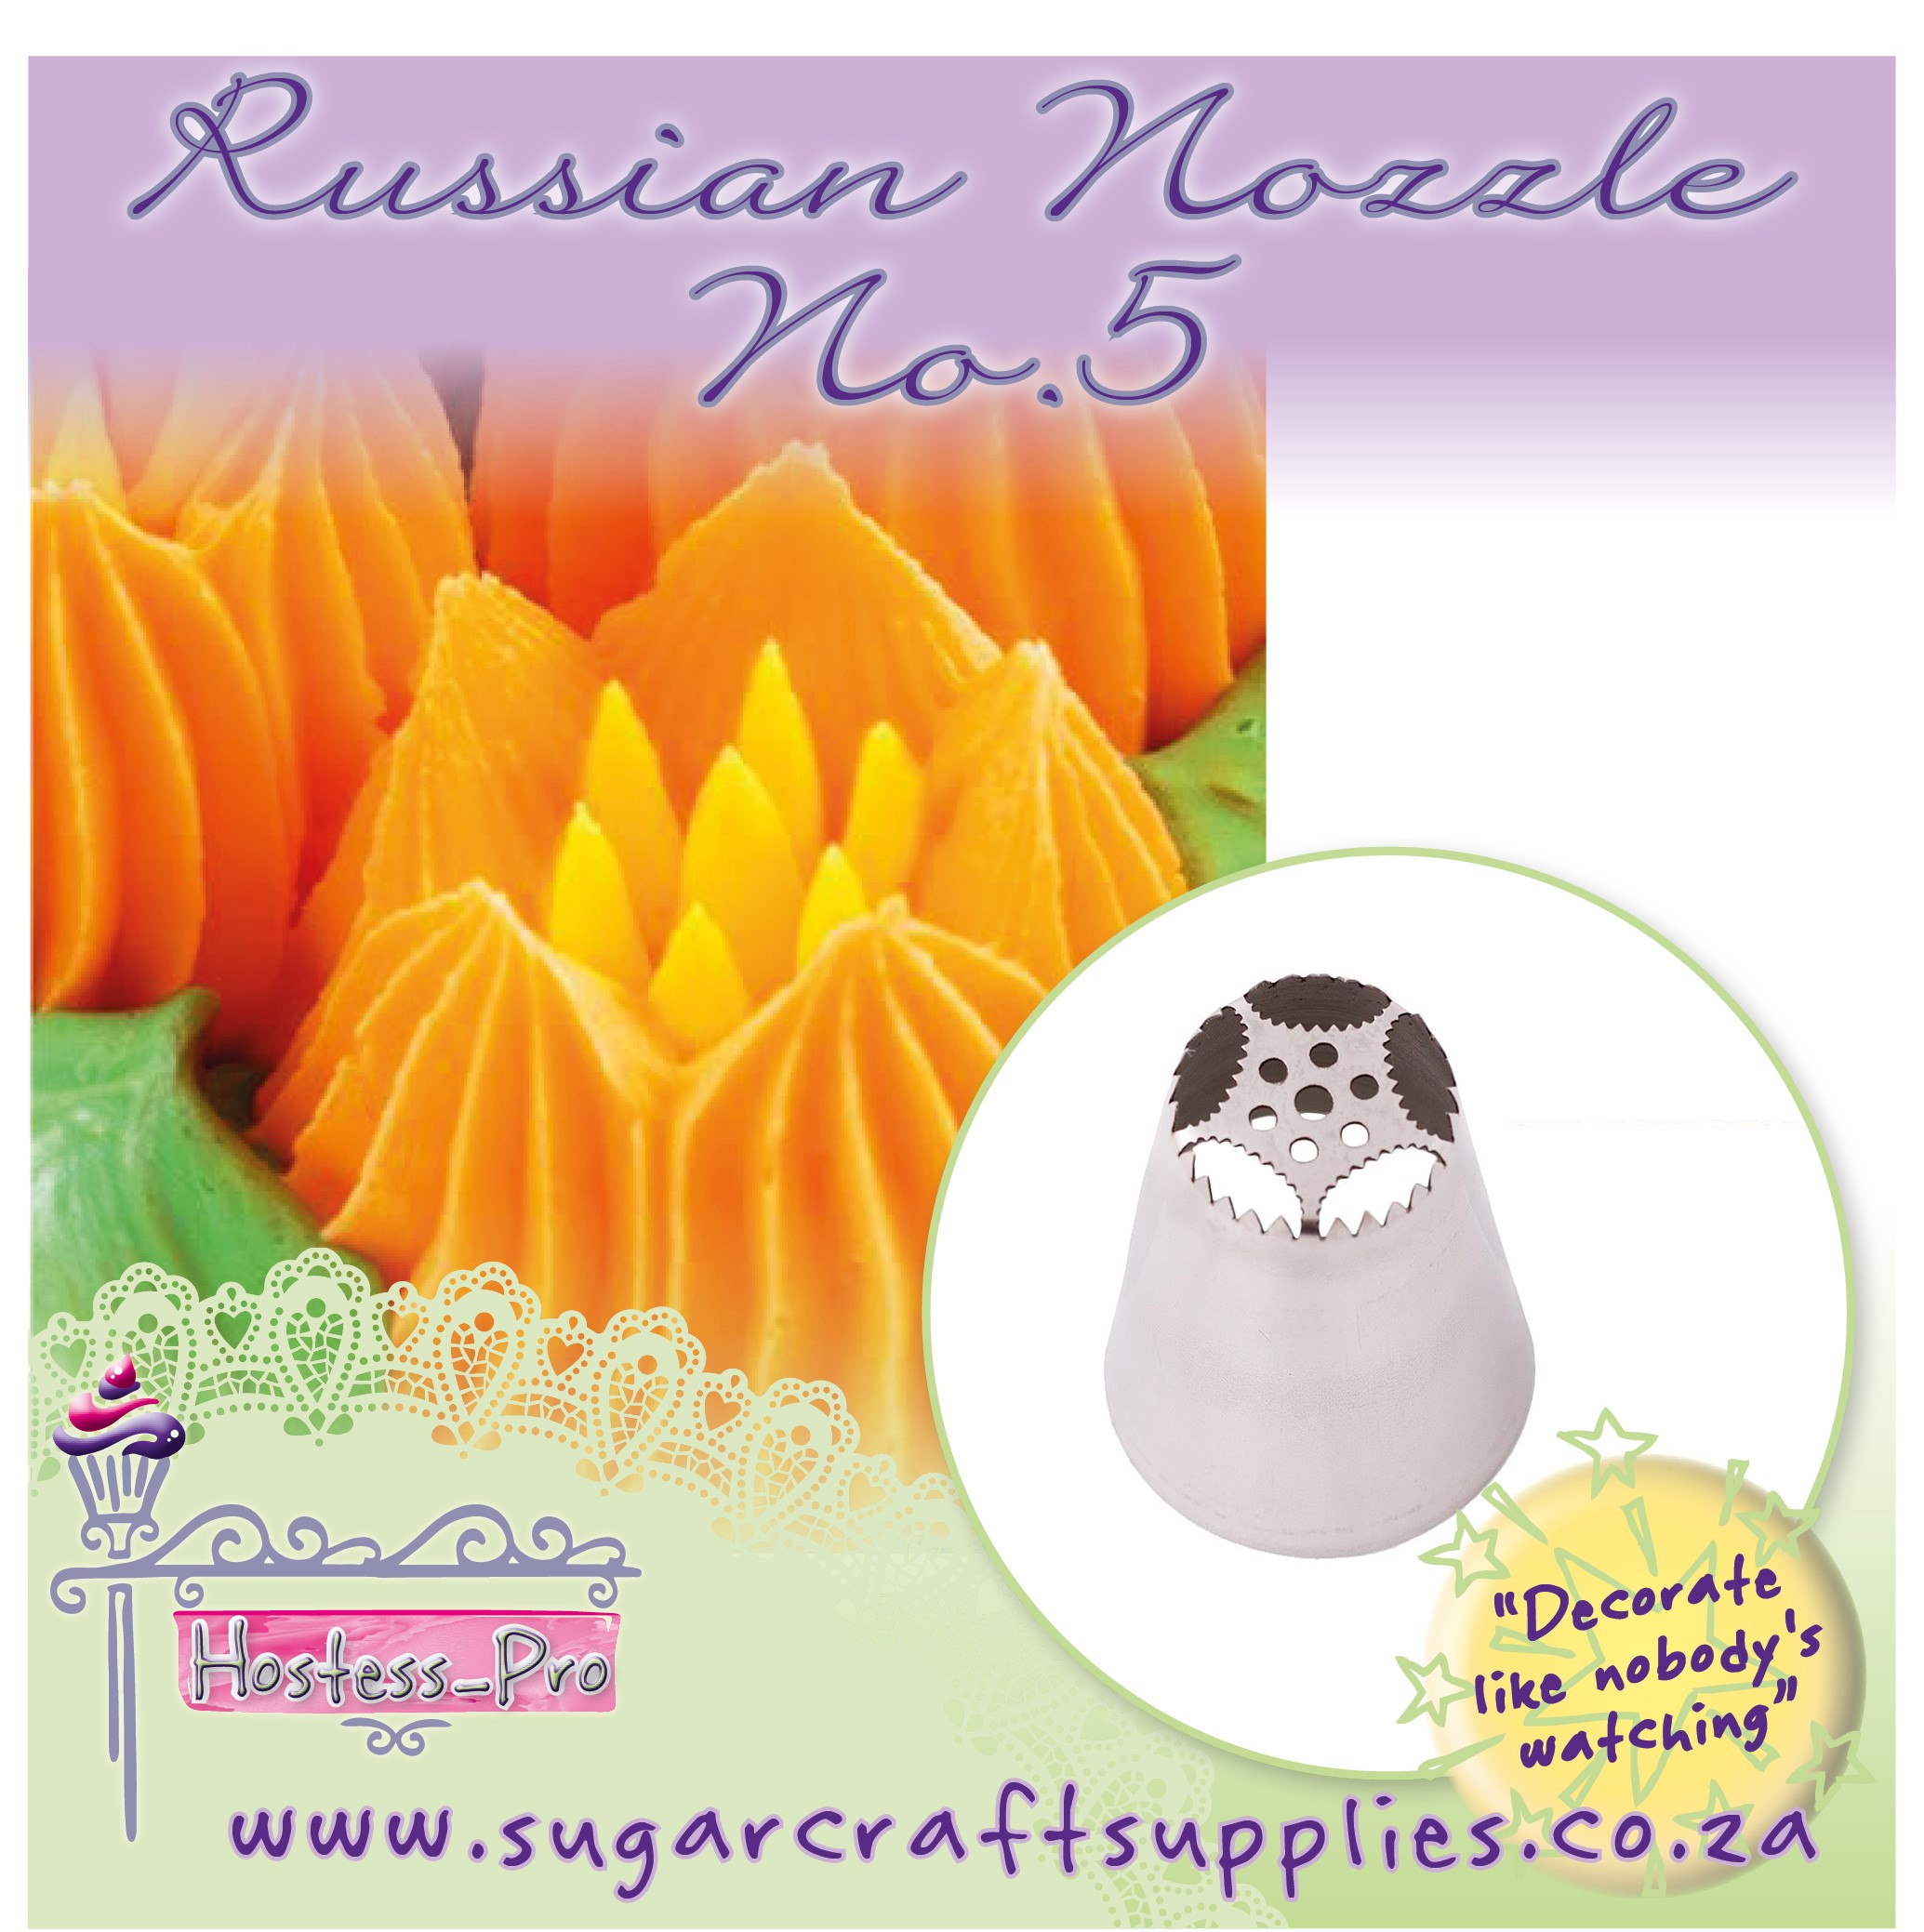 russian-nozzle-no5